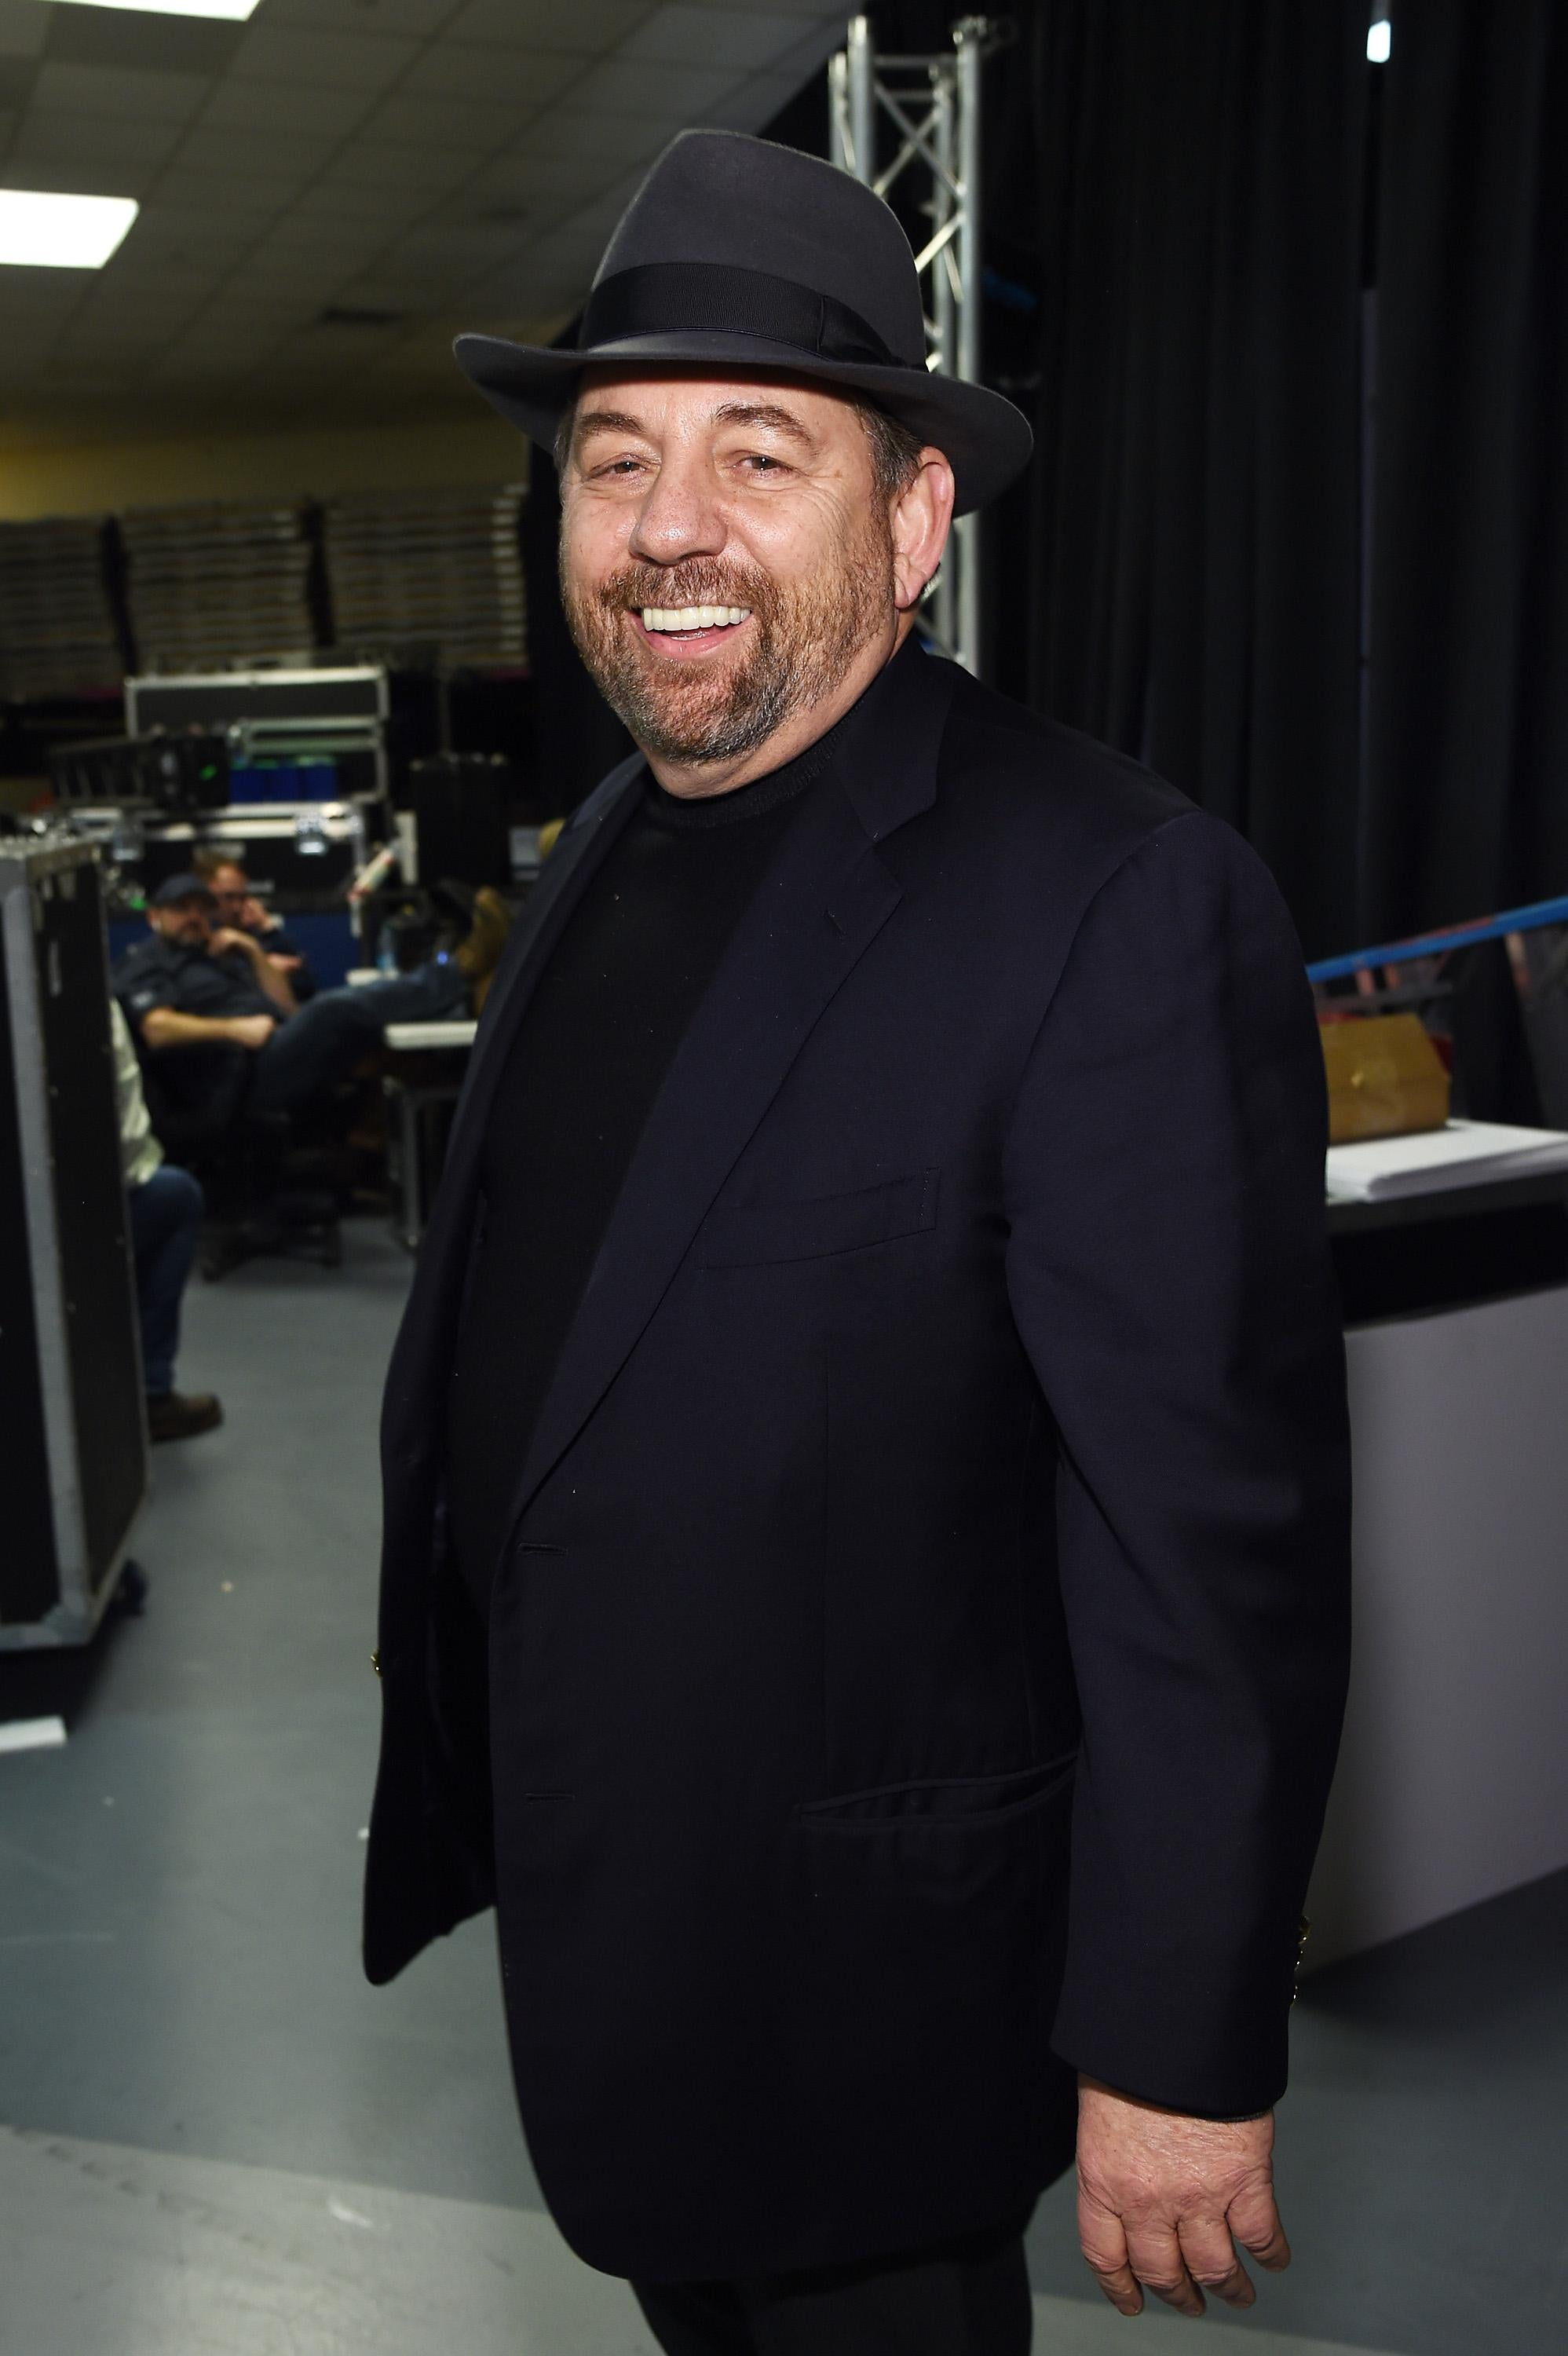 NEW YORK, NY - DECEMBER 12:  President and CEO of Cablevision Systems Corporation and Executive Chairman of The Madison Square Garden Company, James Dolan poses backstage at iHeartRadio Jingle Ball 2014, hosted by Z100 New York and presented by Goldfish Puffs at Madison Square Garden on December 12, 2014 in New York City.  (Photo by Jamie McCarthy/Getty Images for iHeartMedia)